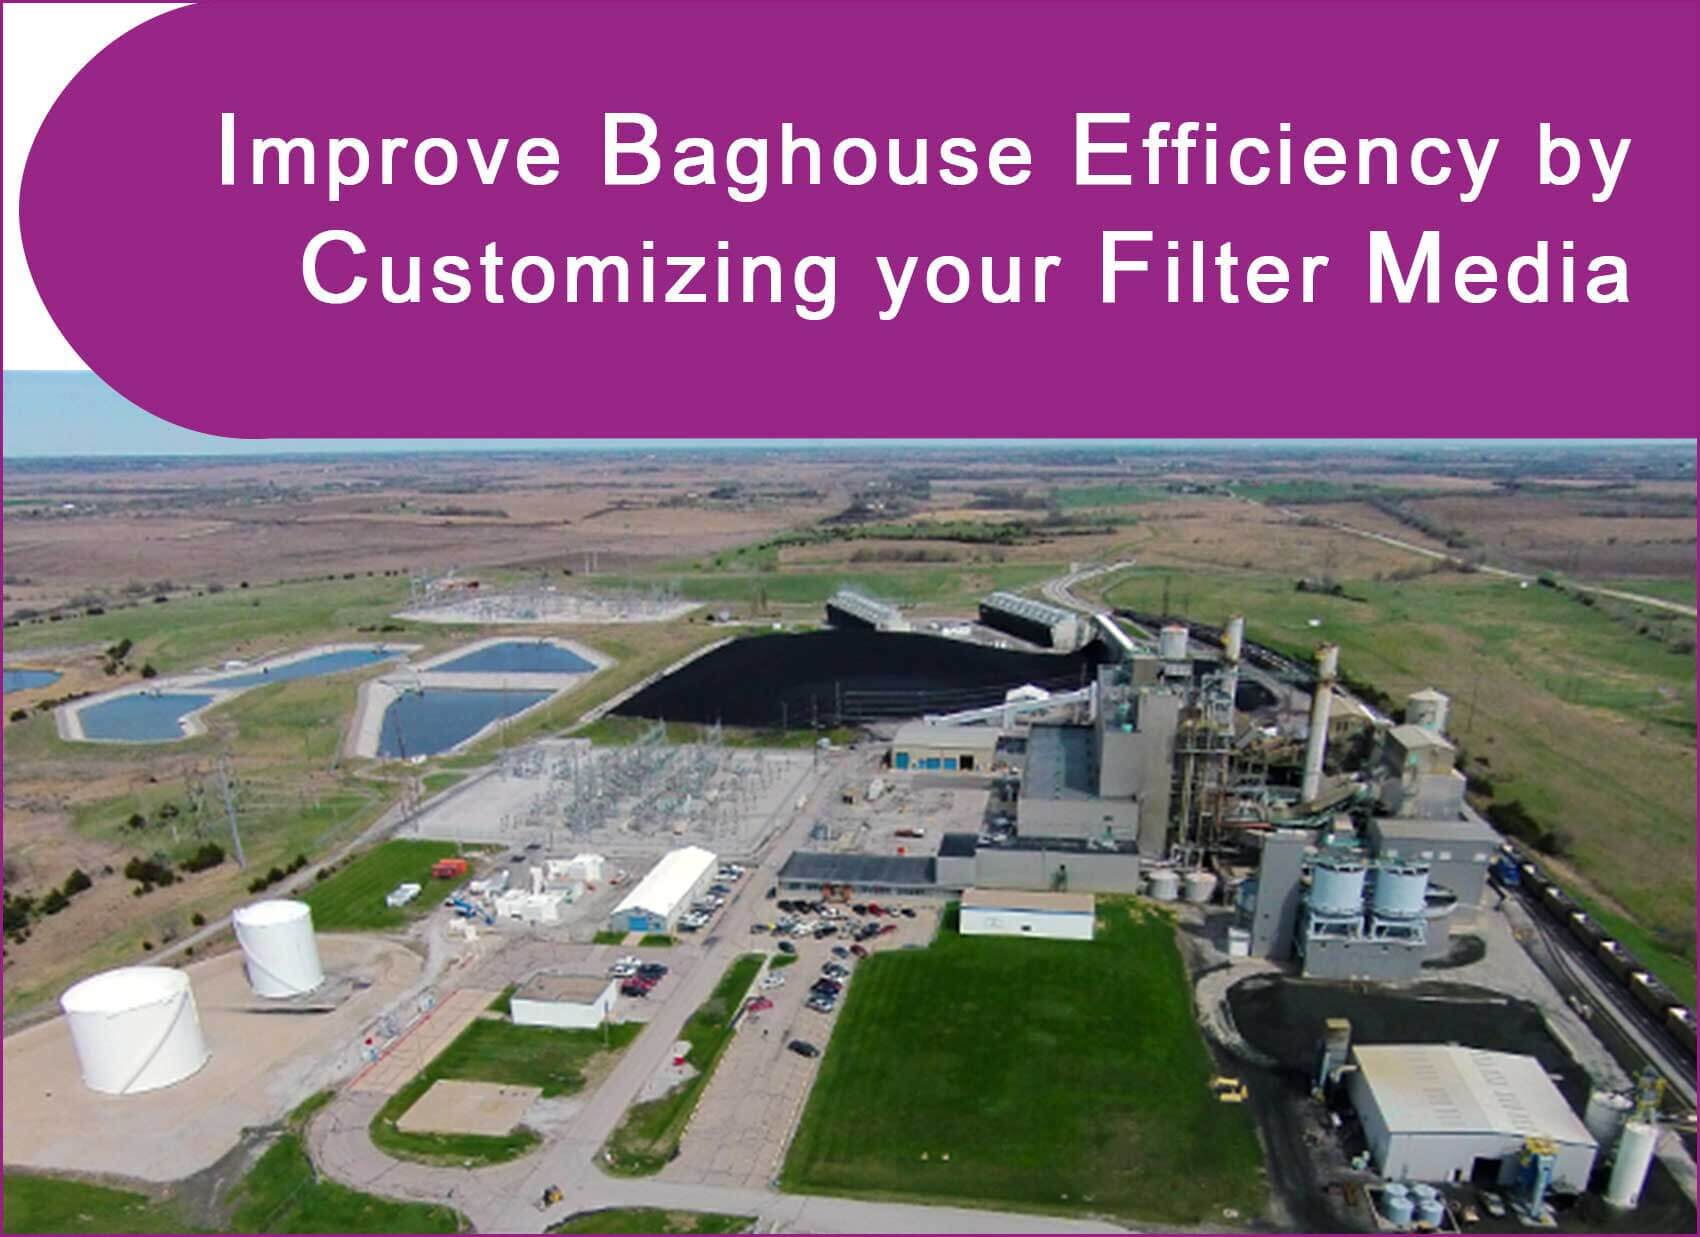 P84 felt and P84 scrim were determined to be the most cost-effective configuration based on the plant's particle size distribution, temperature of the bag, and level of acid products in the exhaust gas.